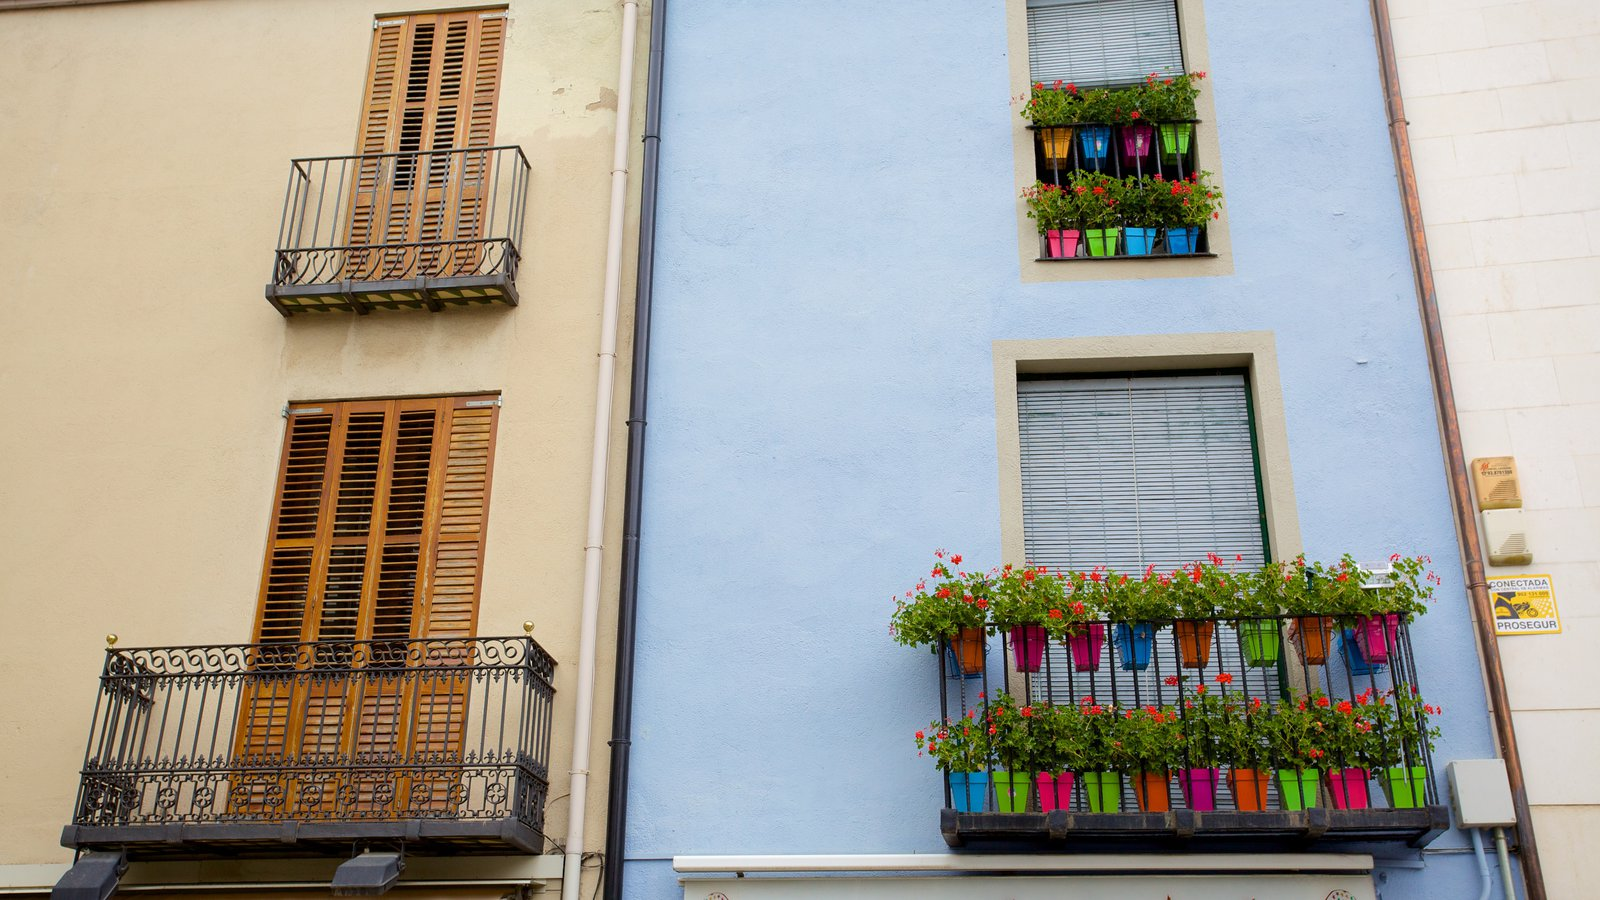 Granollers showing flowers, street scenes and a house